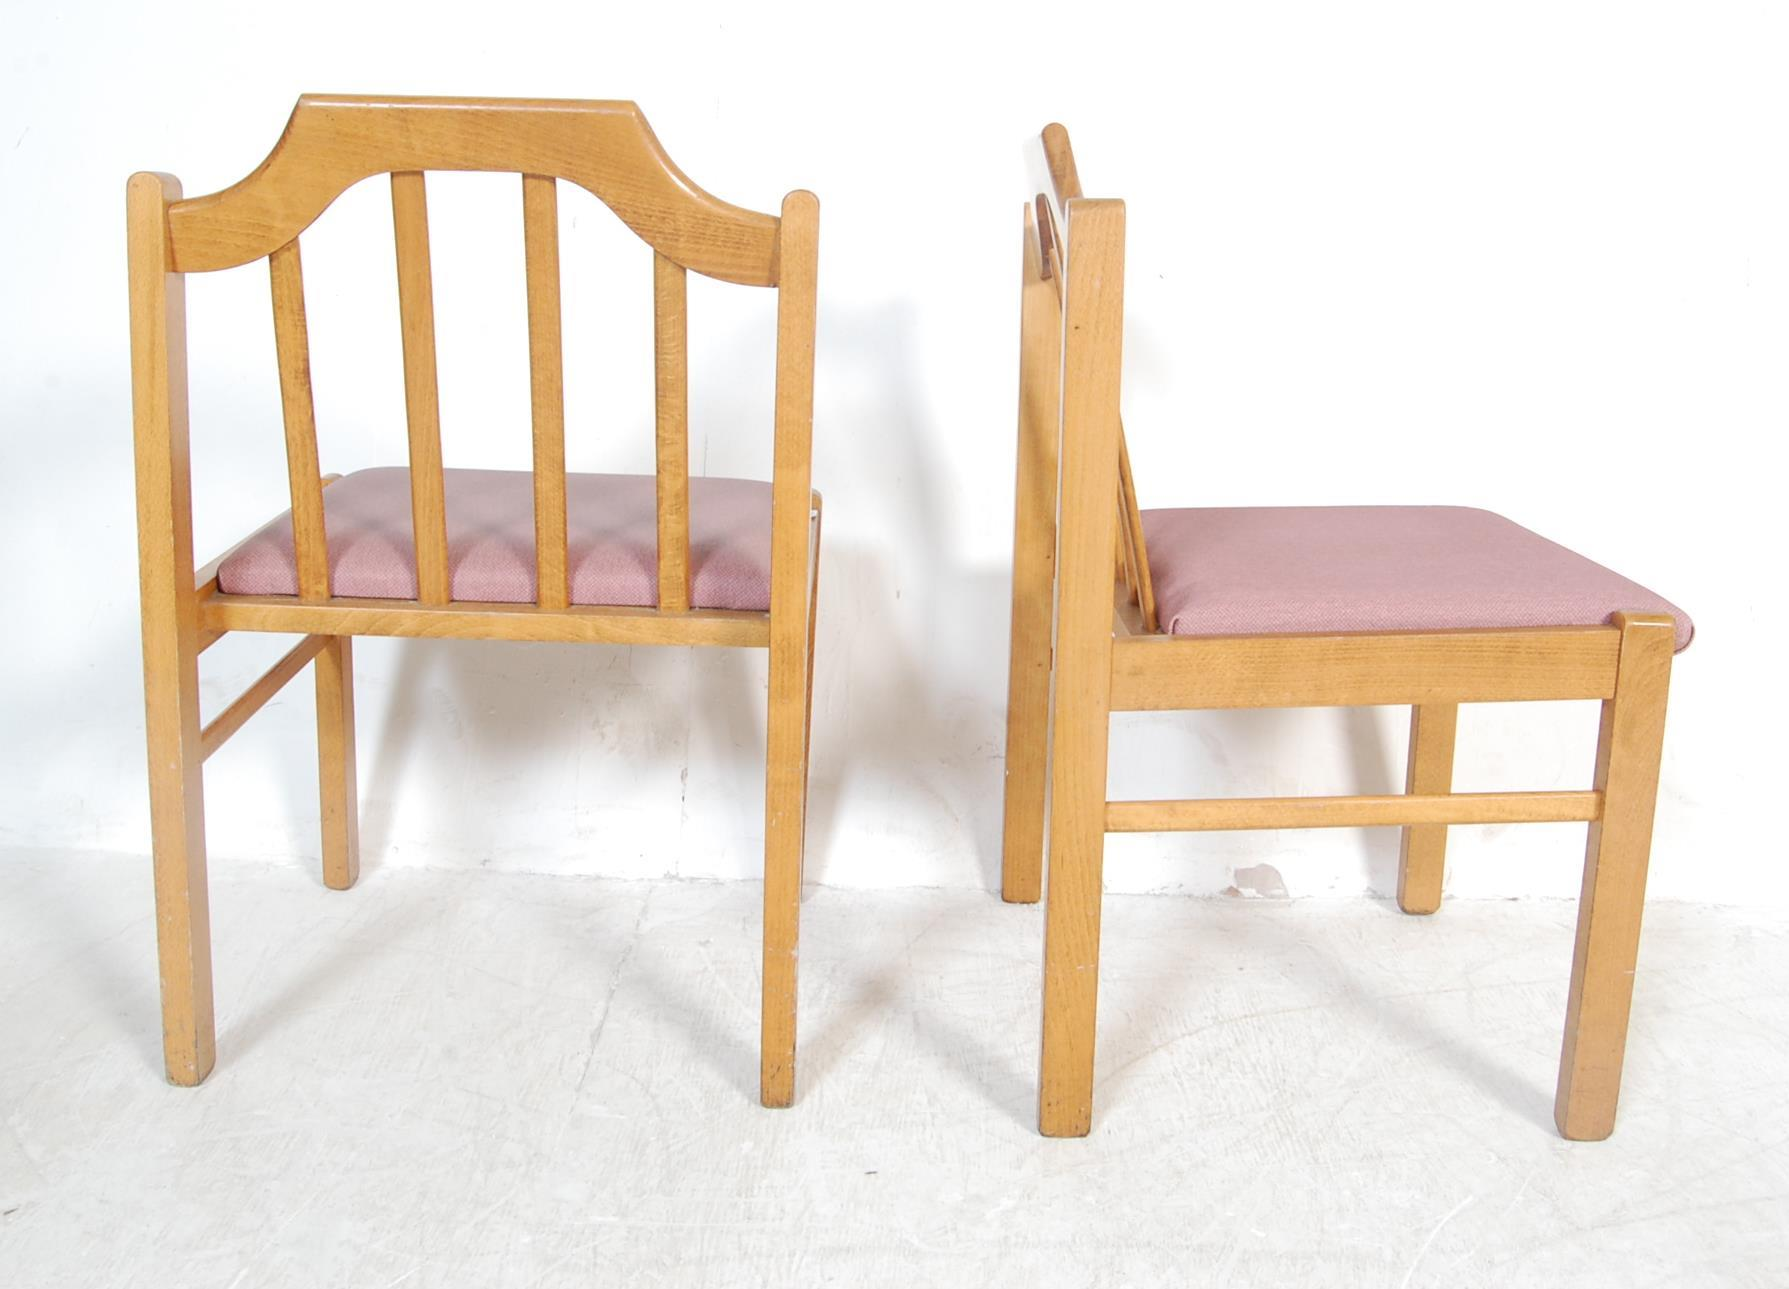 EIGHT VINTAGE GOLDEN OAK DINING CHAIRS - Image 6 of 8